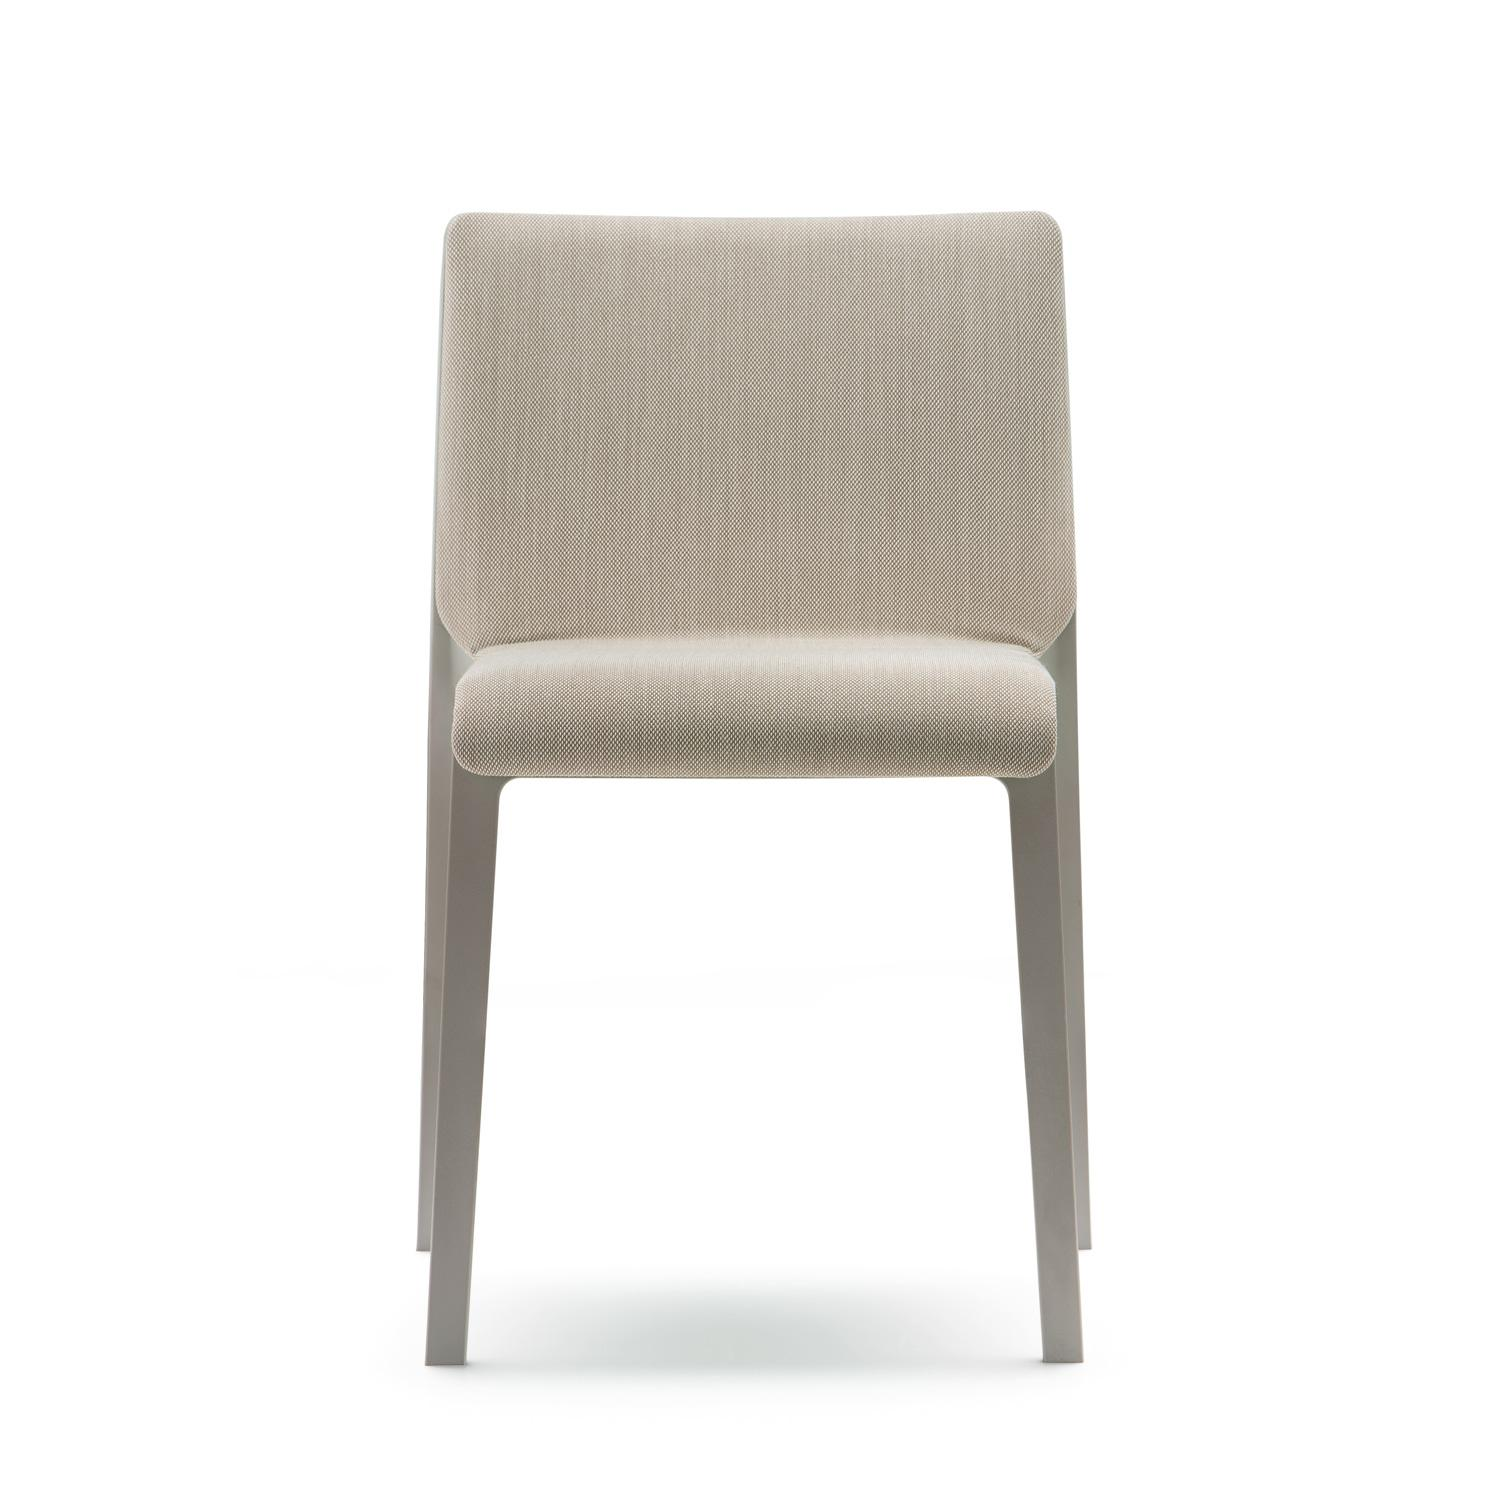 Pedrali-volt-soft-chair